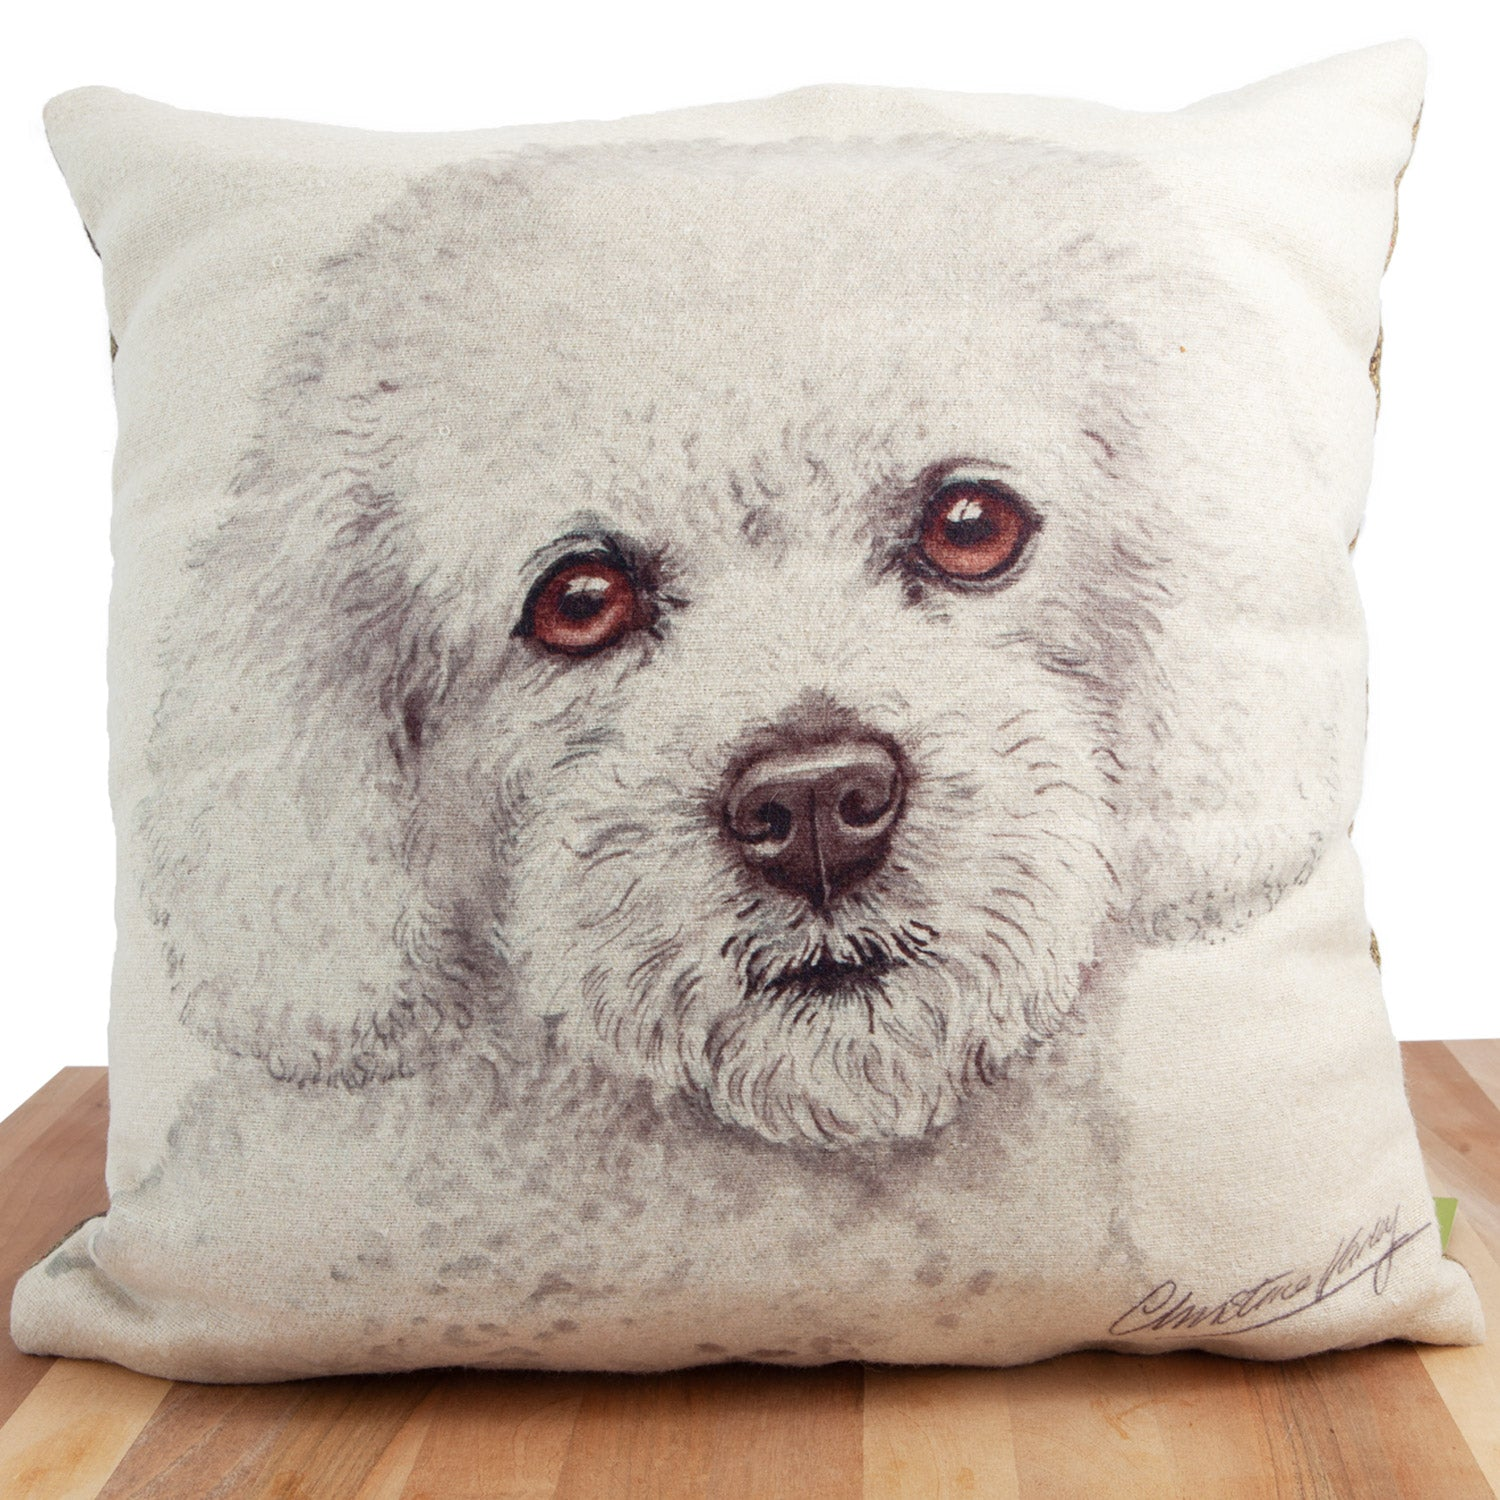 Dog Lover Gifts available at Dog Krazy Gifts. Bichon Frise Cushion, part of our Christine Varley collection – available at www.dogkrazygifts.co.uk